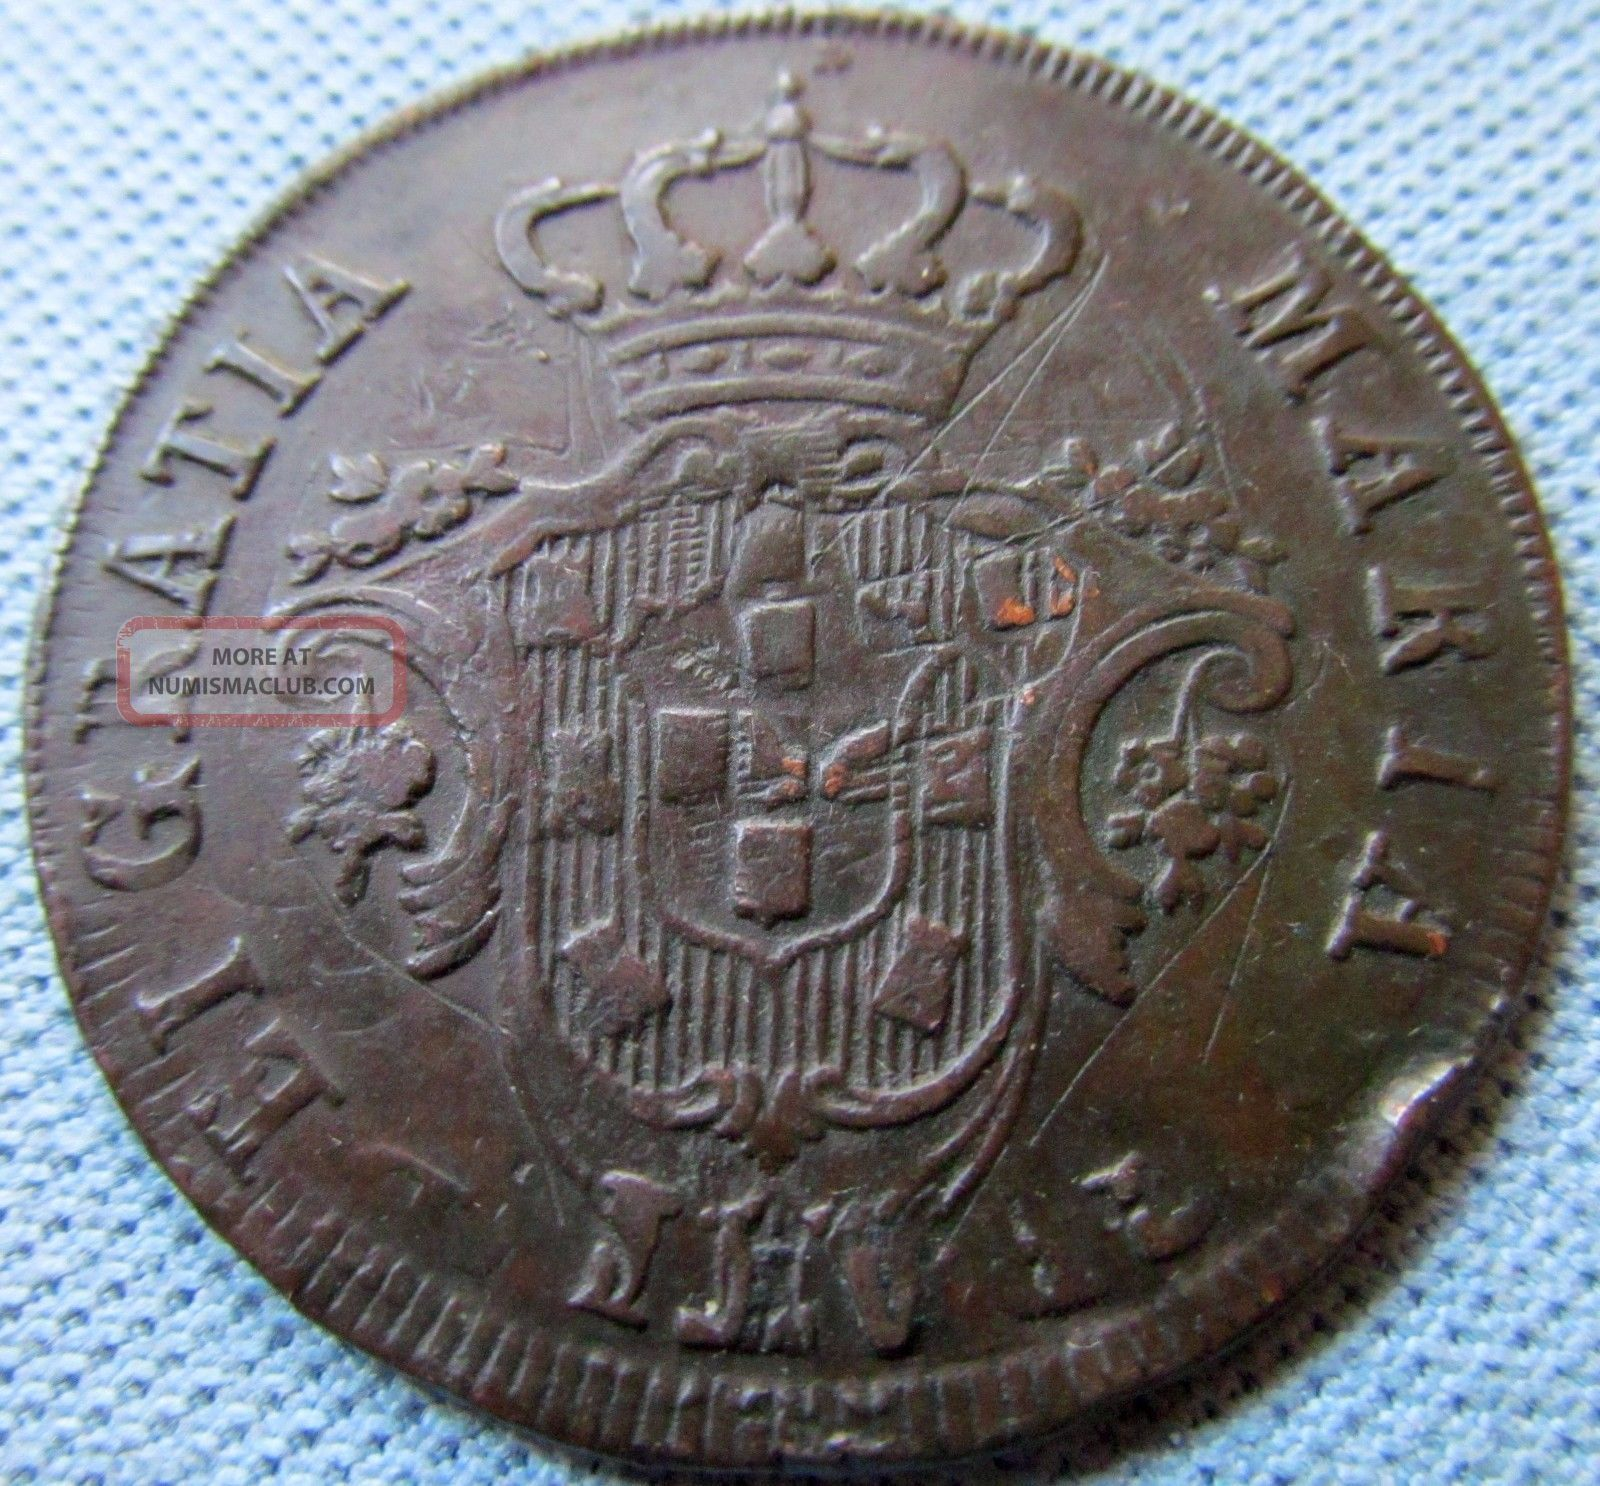 1795 Portugal Azores Old Coin 20 Reis Copper - Detail Interesting Overstrike Europe photo